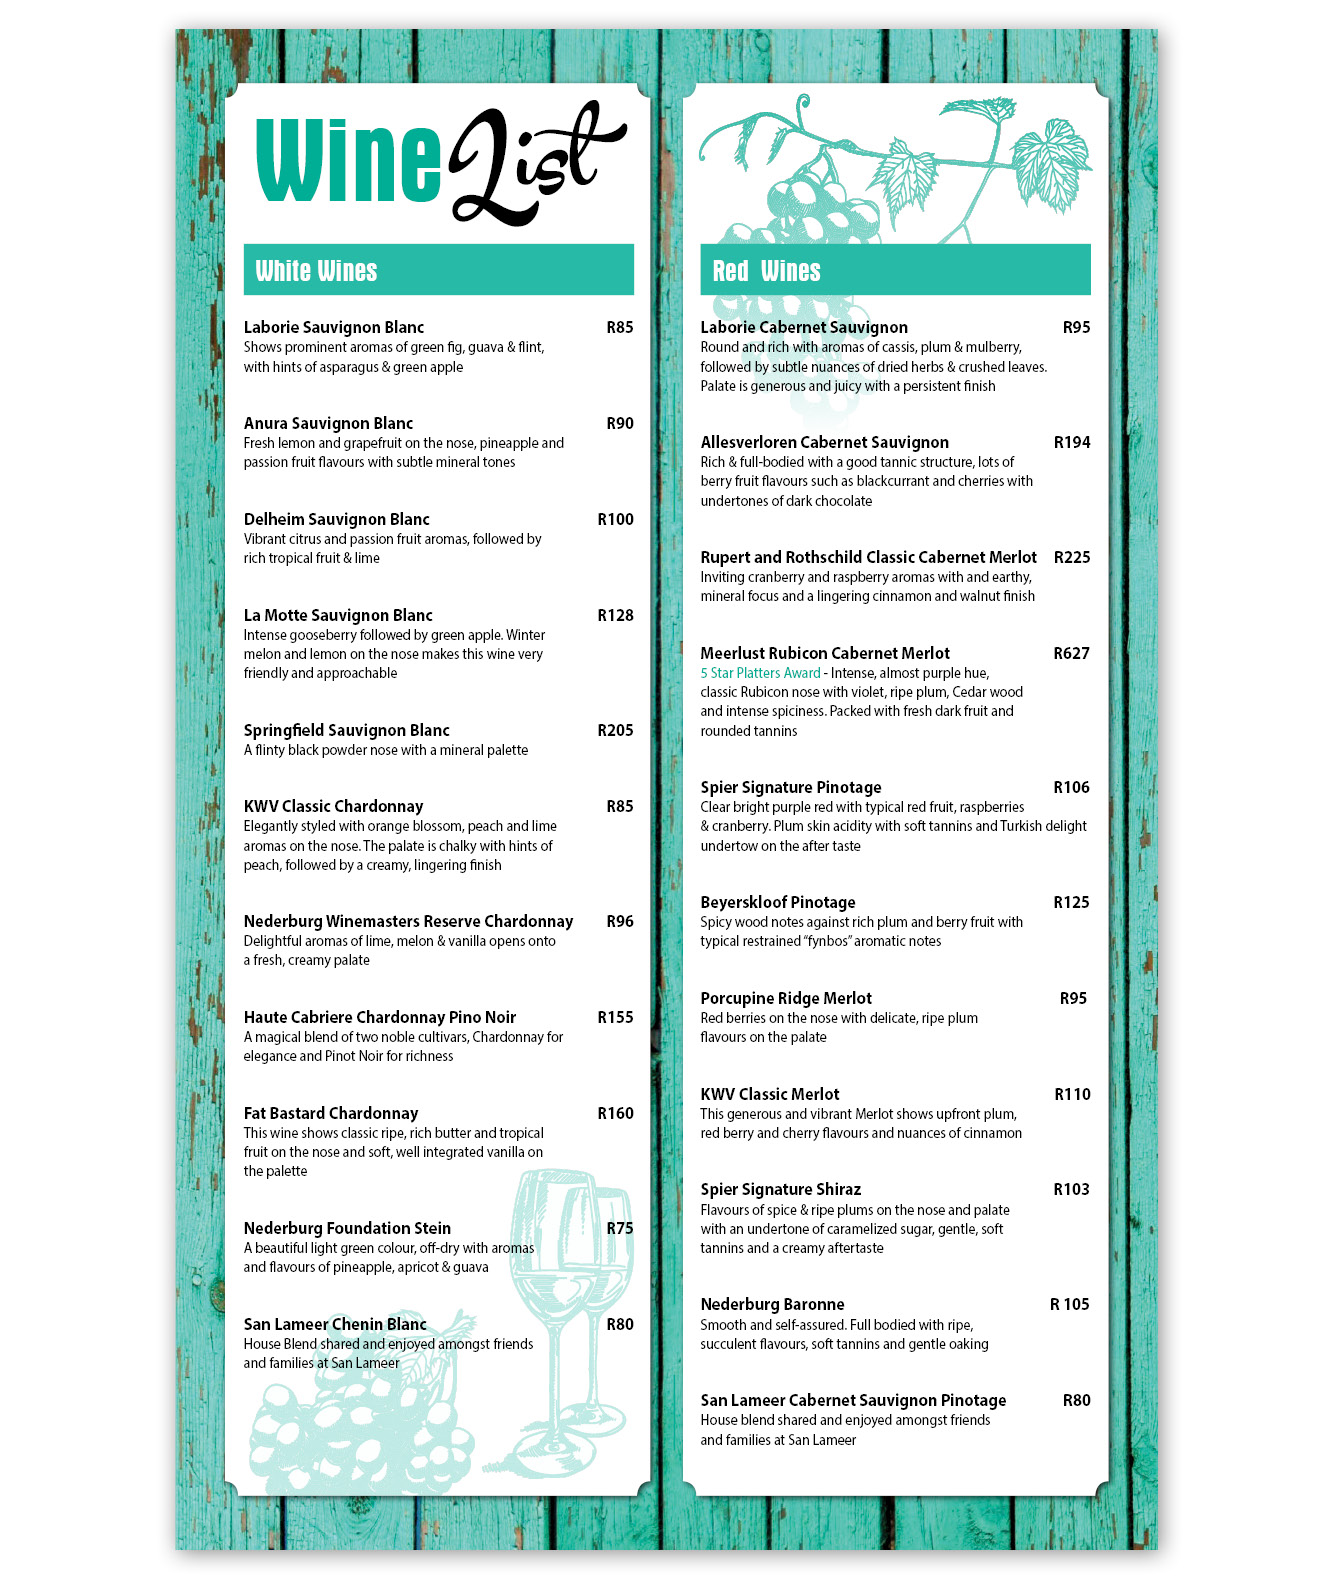 Clubhouse Wine List Menu Design